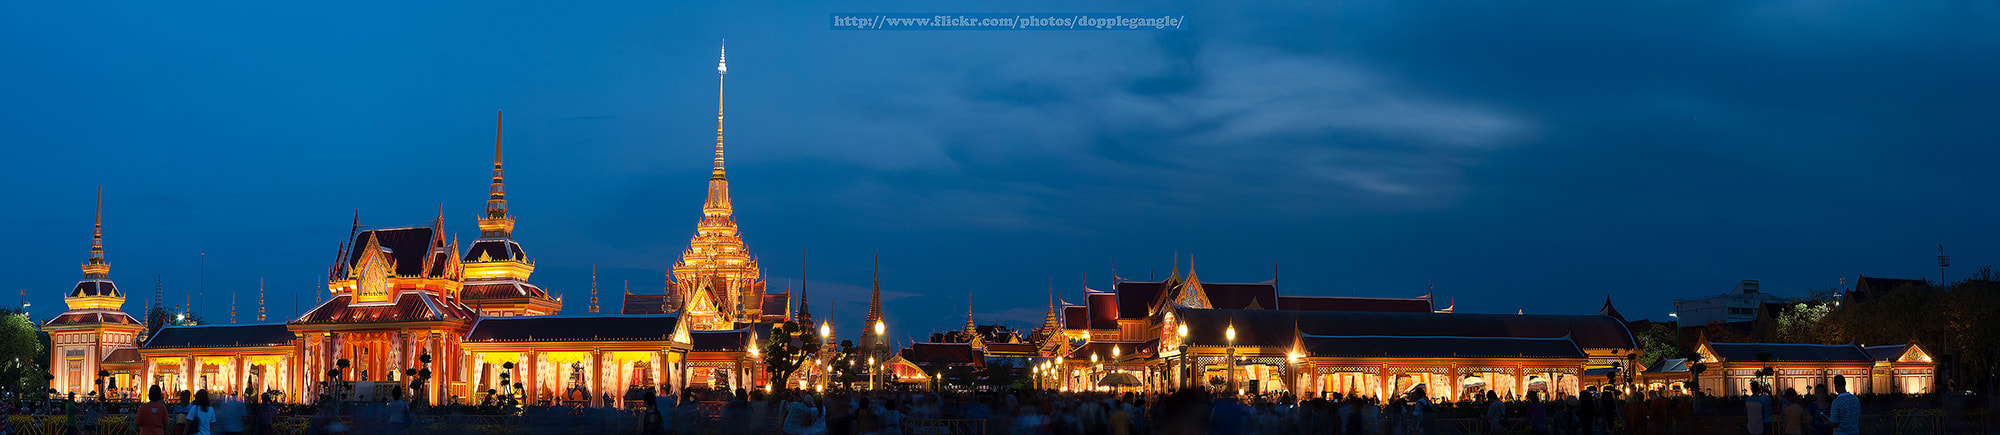 Photograph Royal Crematory in Thailand (Panorama)  by Vorravut Thanareukchai on 500px